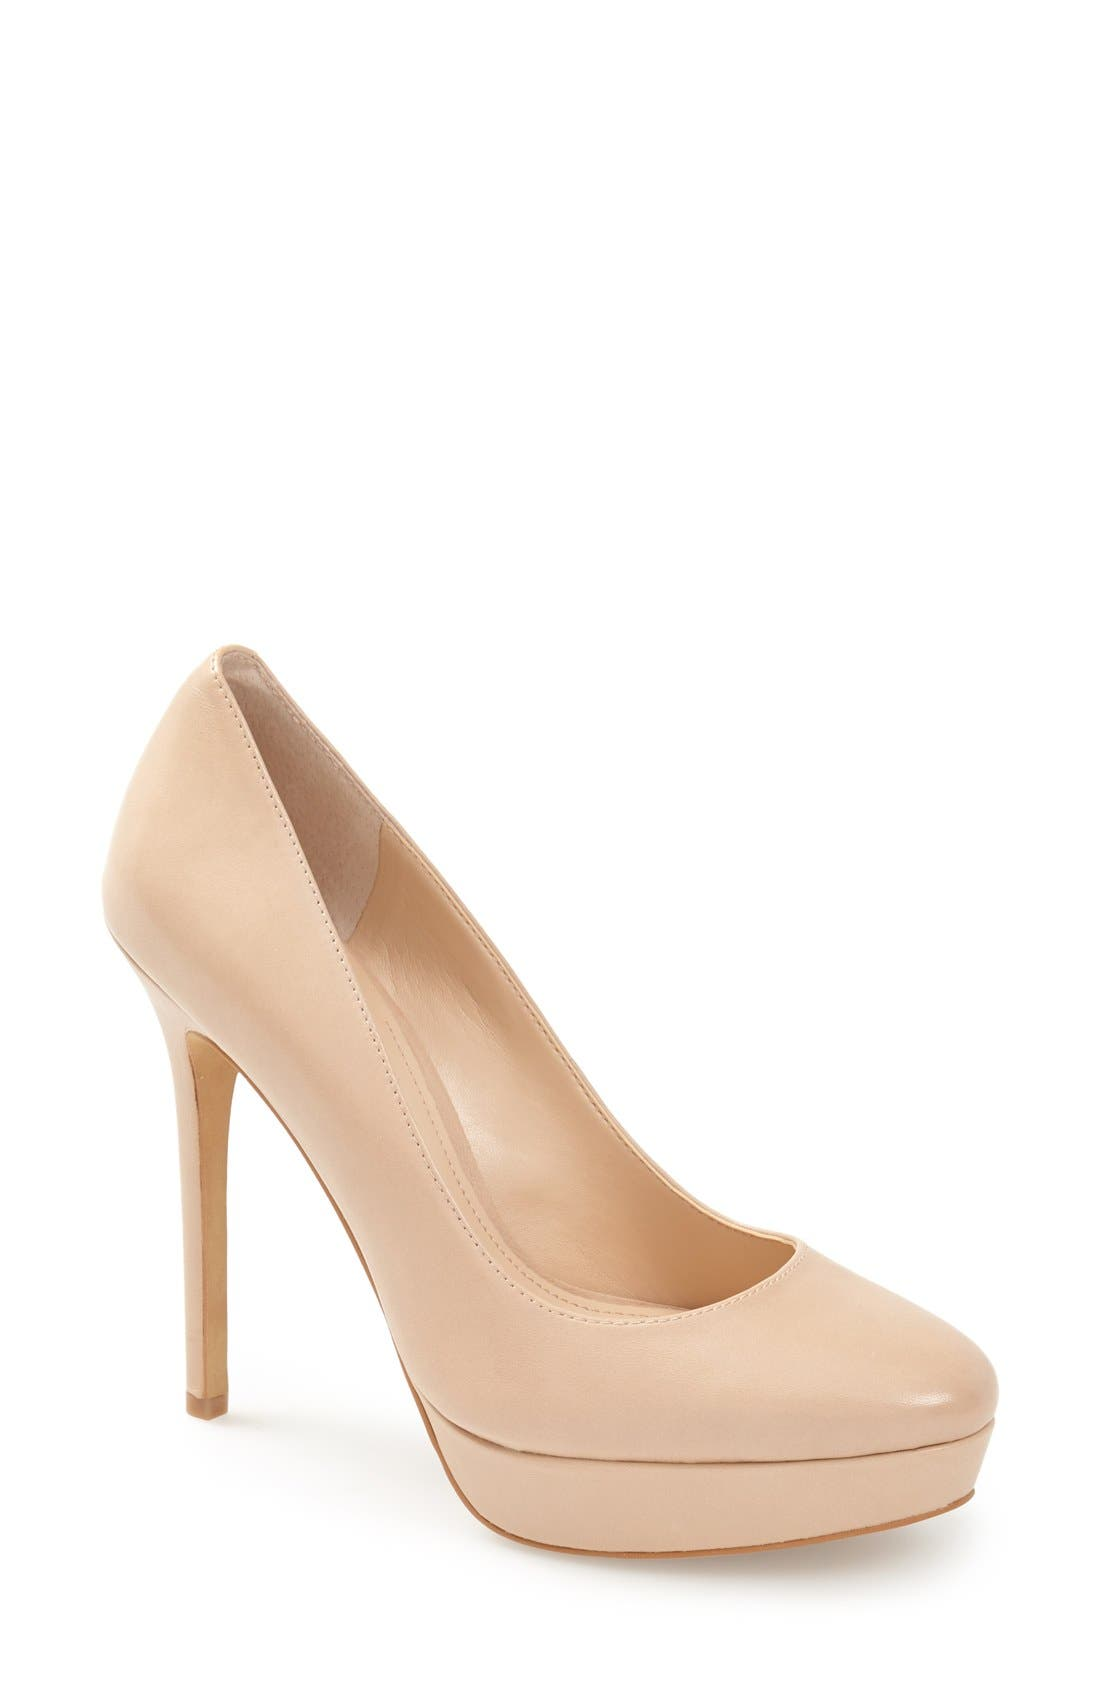 Alternate Image 1 Selected - Vince Camuto 'Niomi' Pump (Women)